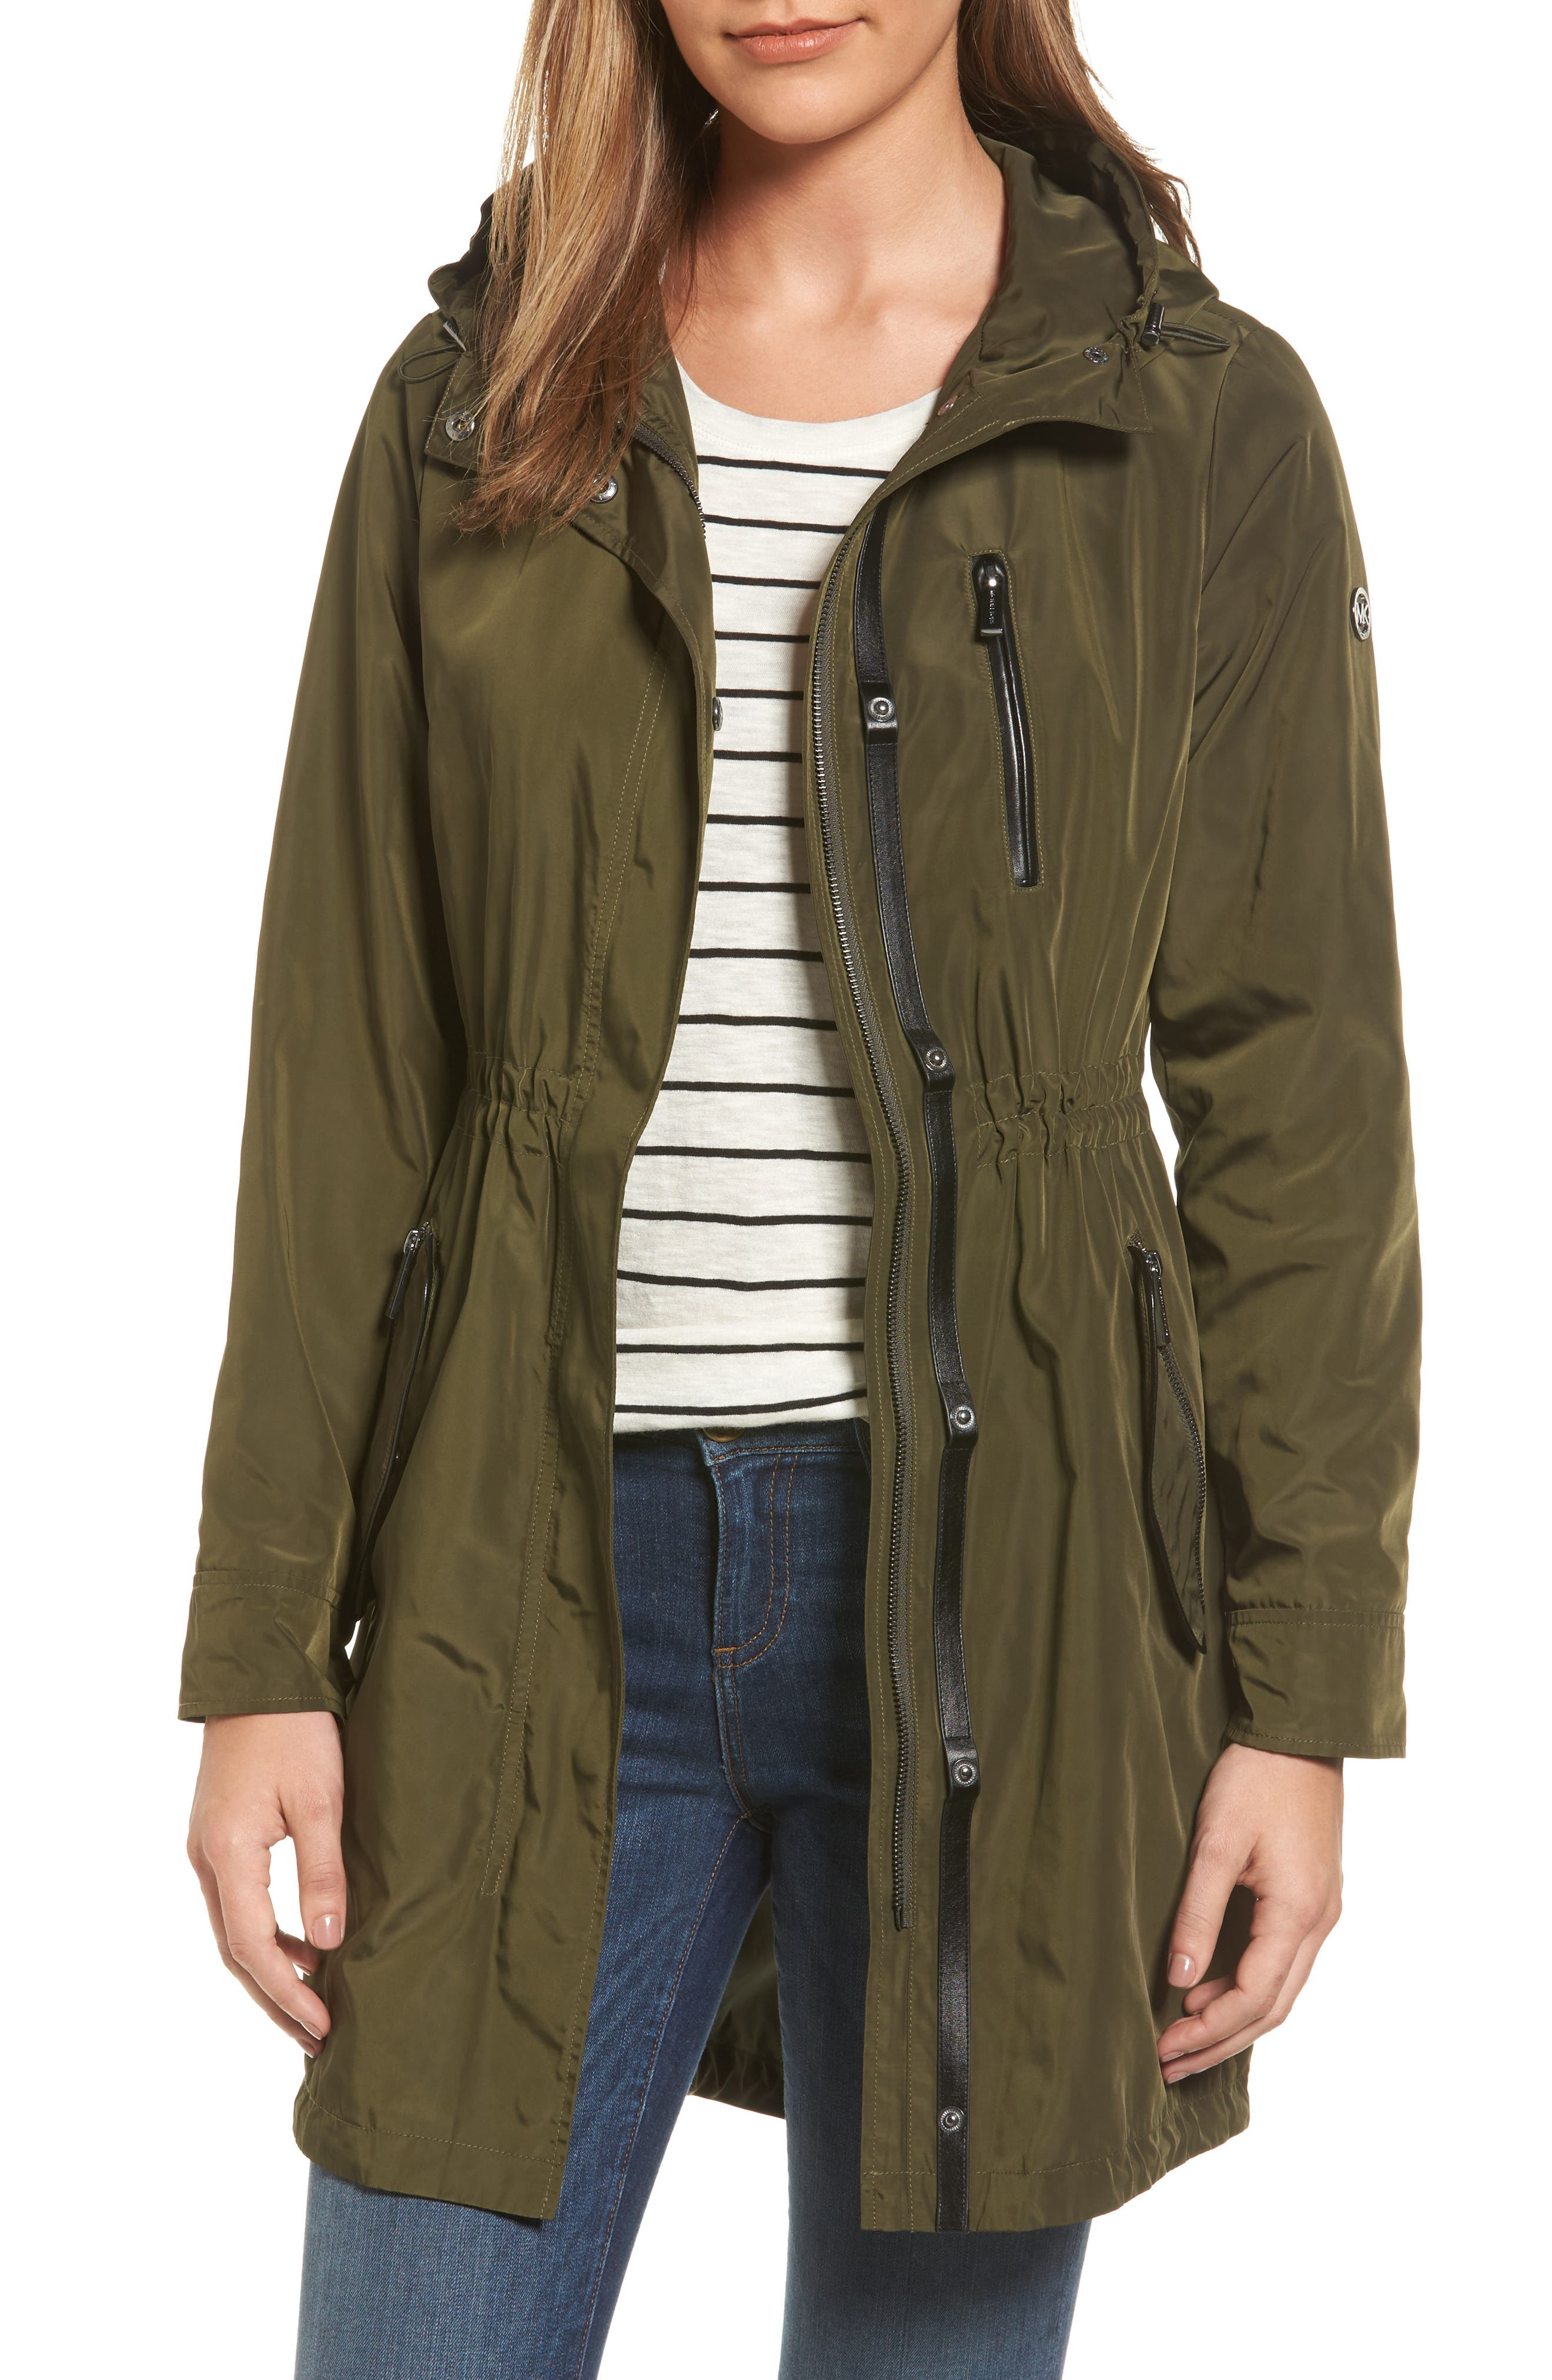 MICHAEL MICHAEL KORS Hooded Drawstring Long Coat